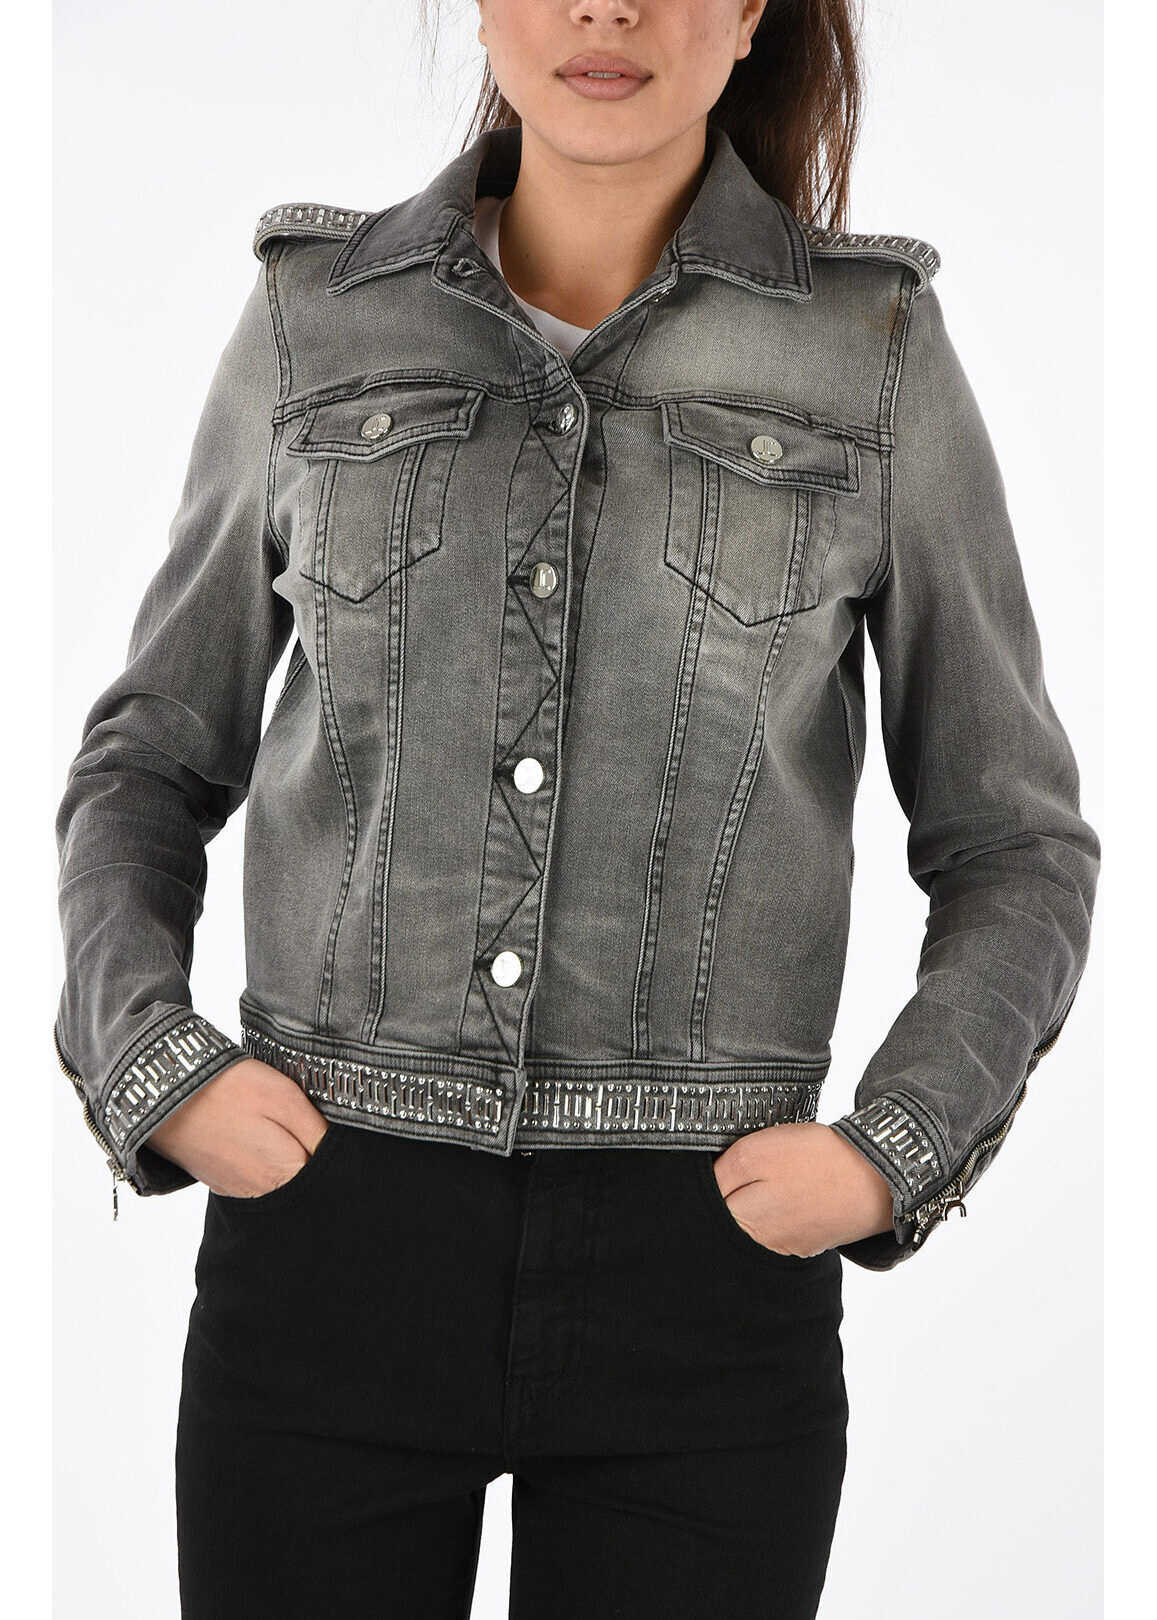 Just Cavalli Studded Jeans Jacket GRAY